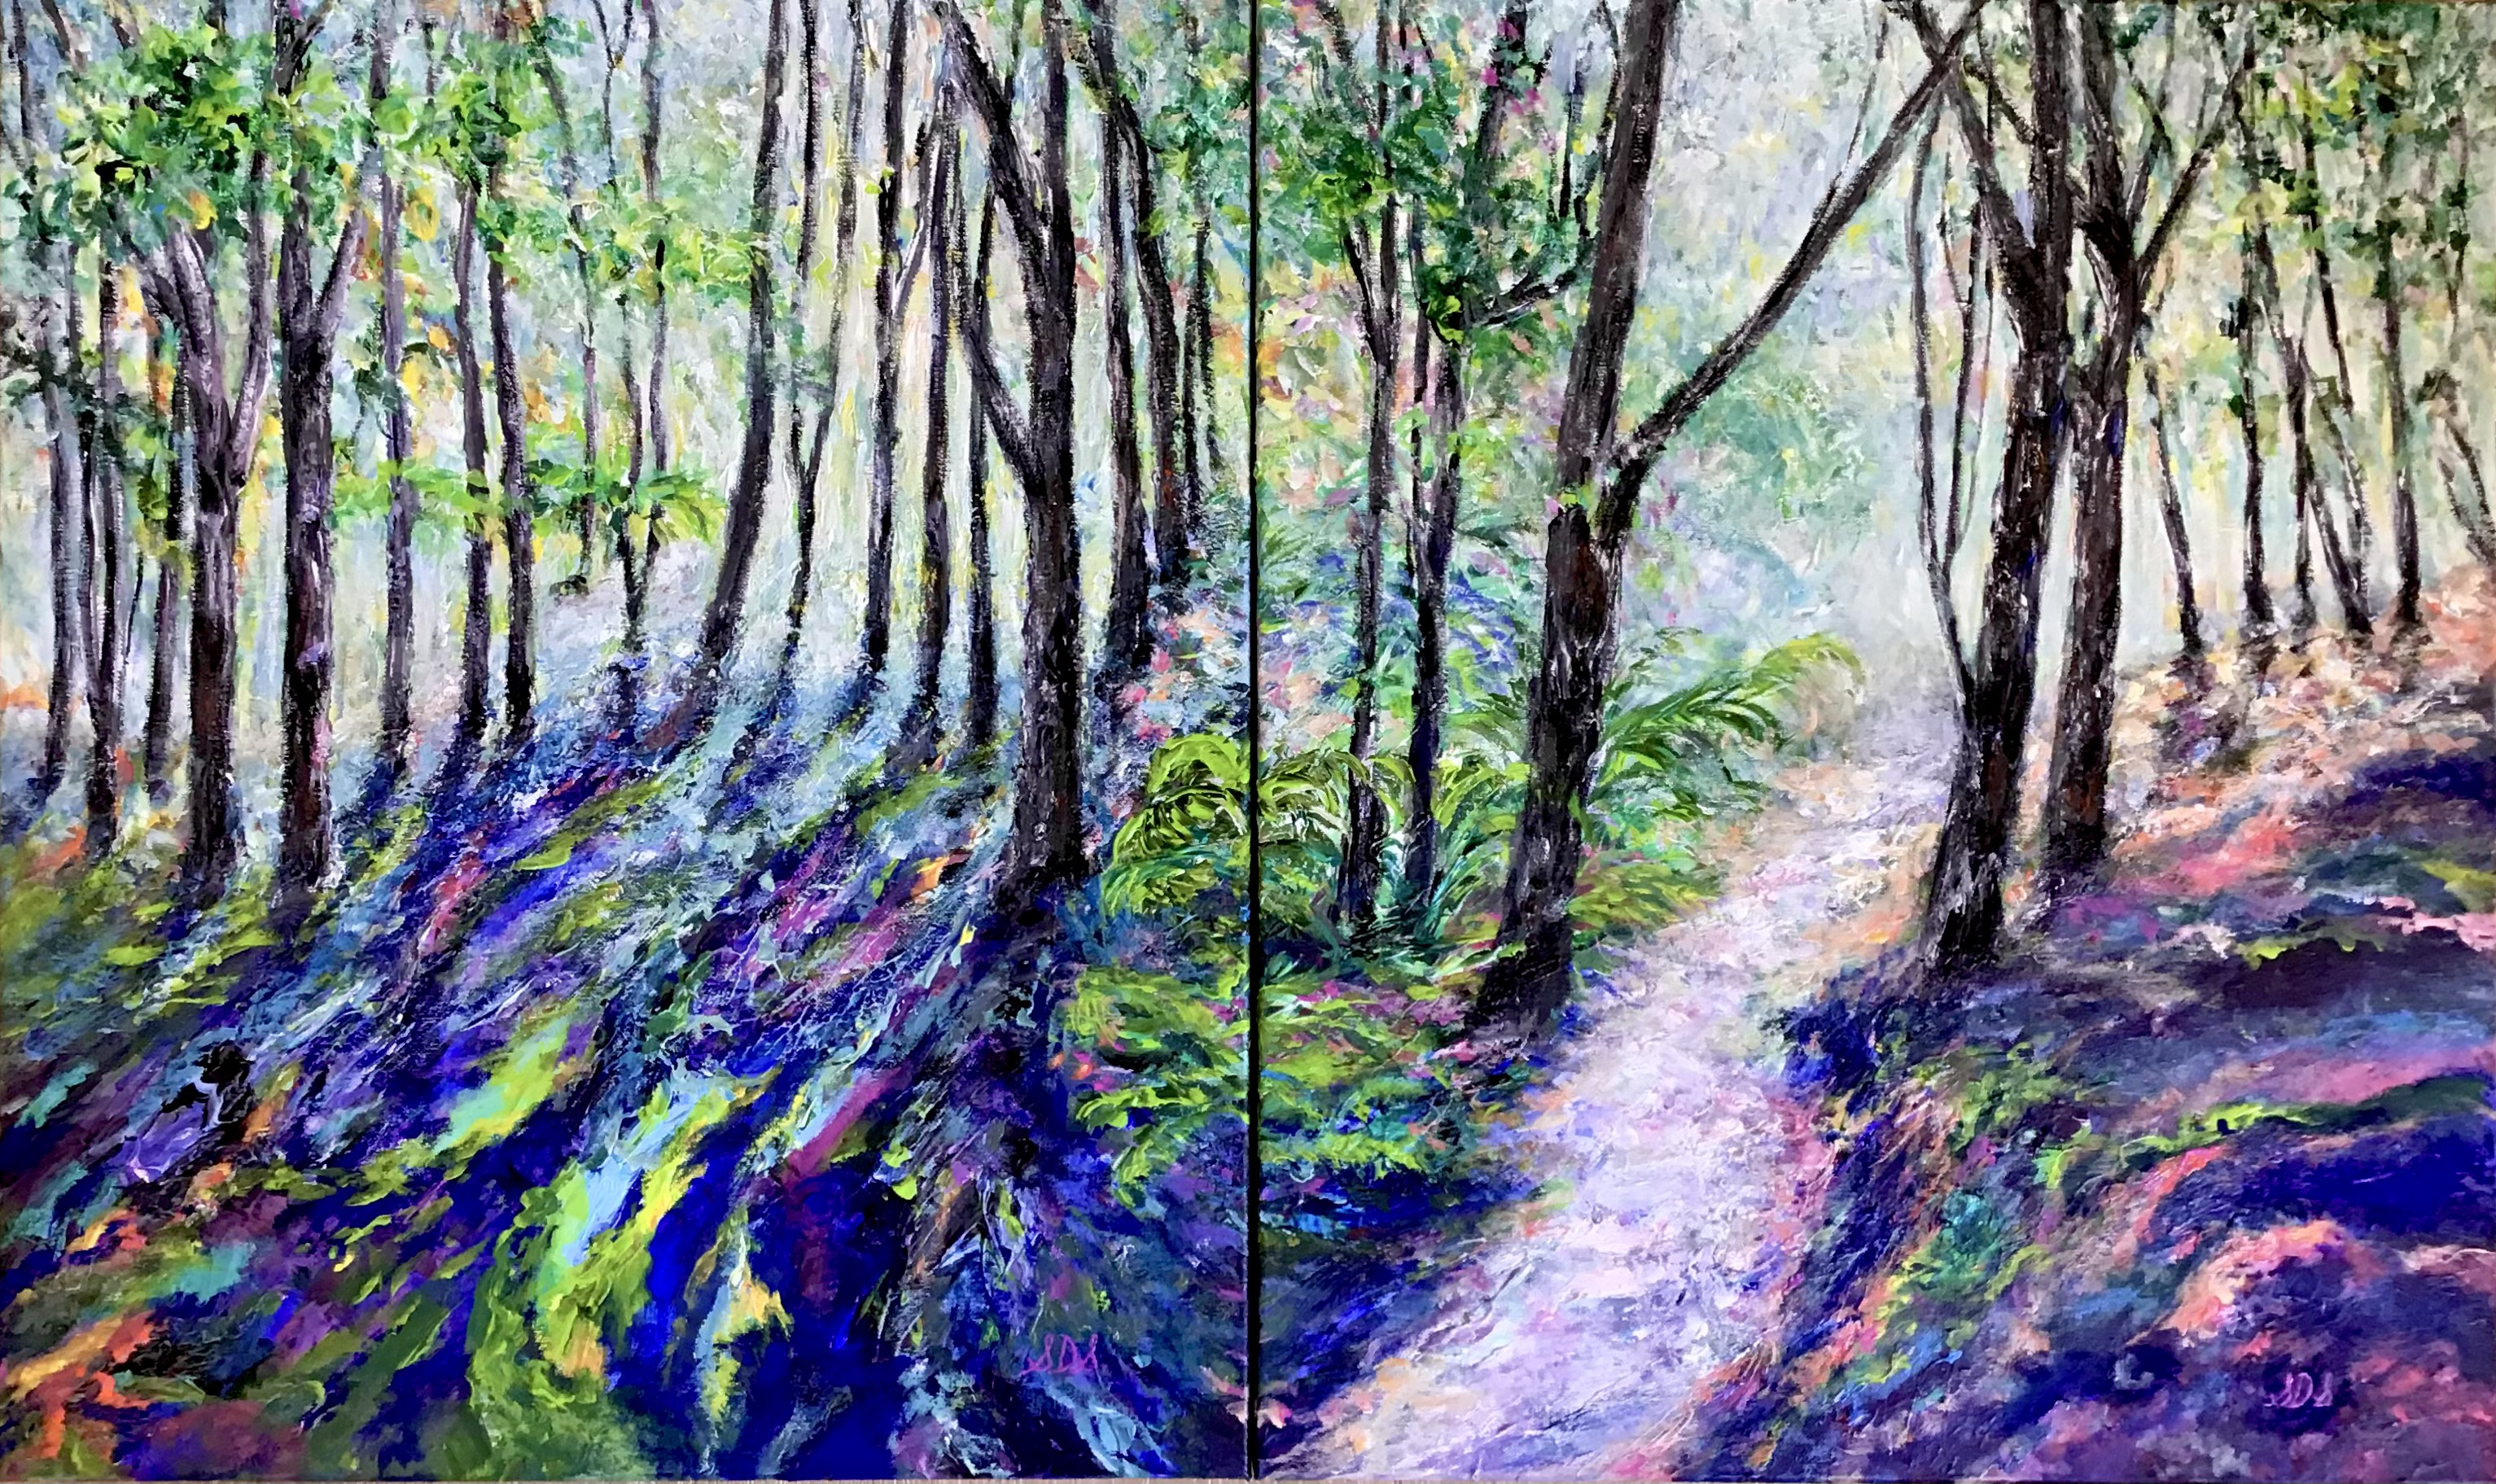 Through The Forest - Diptych